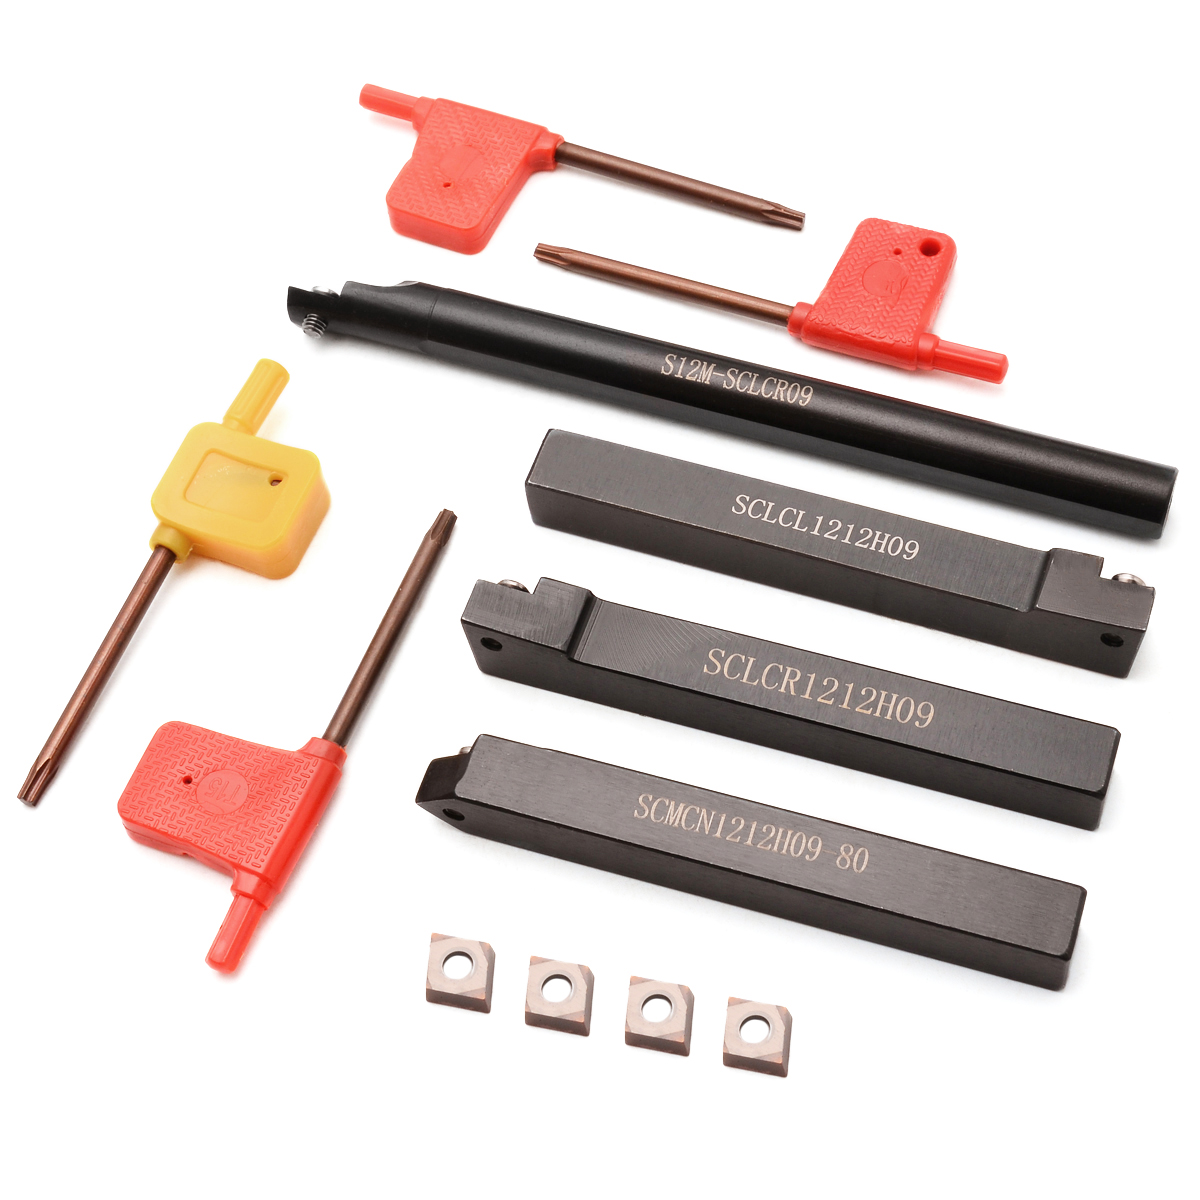 4pcs S12M-SCLCR09/SCLCR/SCLCL/SCMCN1212H09 Boring Bar 12mm Lathe Index Turning Tool Holder + 4pcs CCMT 09T3 Insert with Wrenches solid carbide c12q sclcr09 180mm hot sale sclcr lathe turning holder boring bar insert for semi finishing